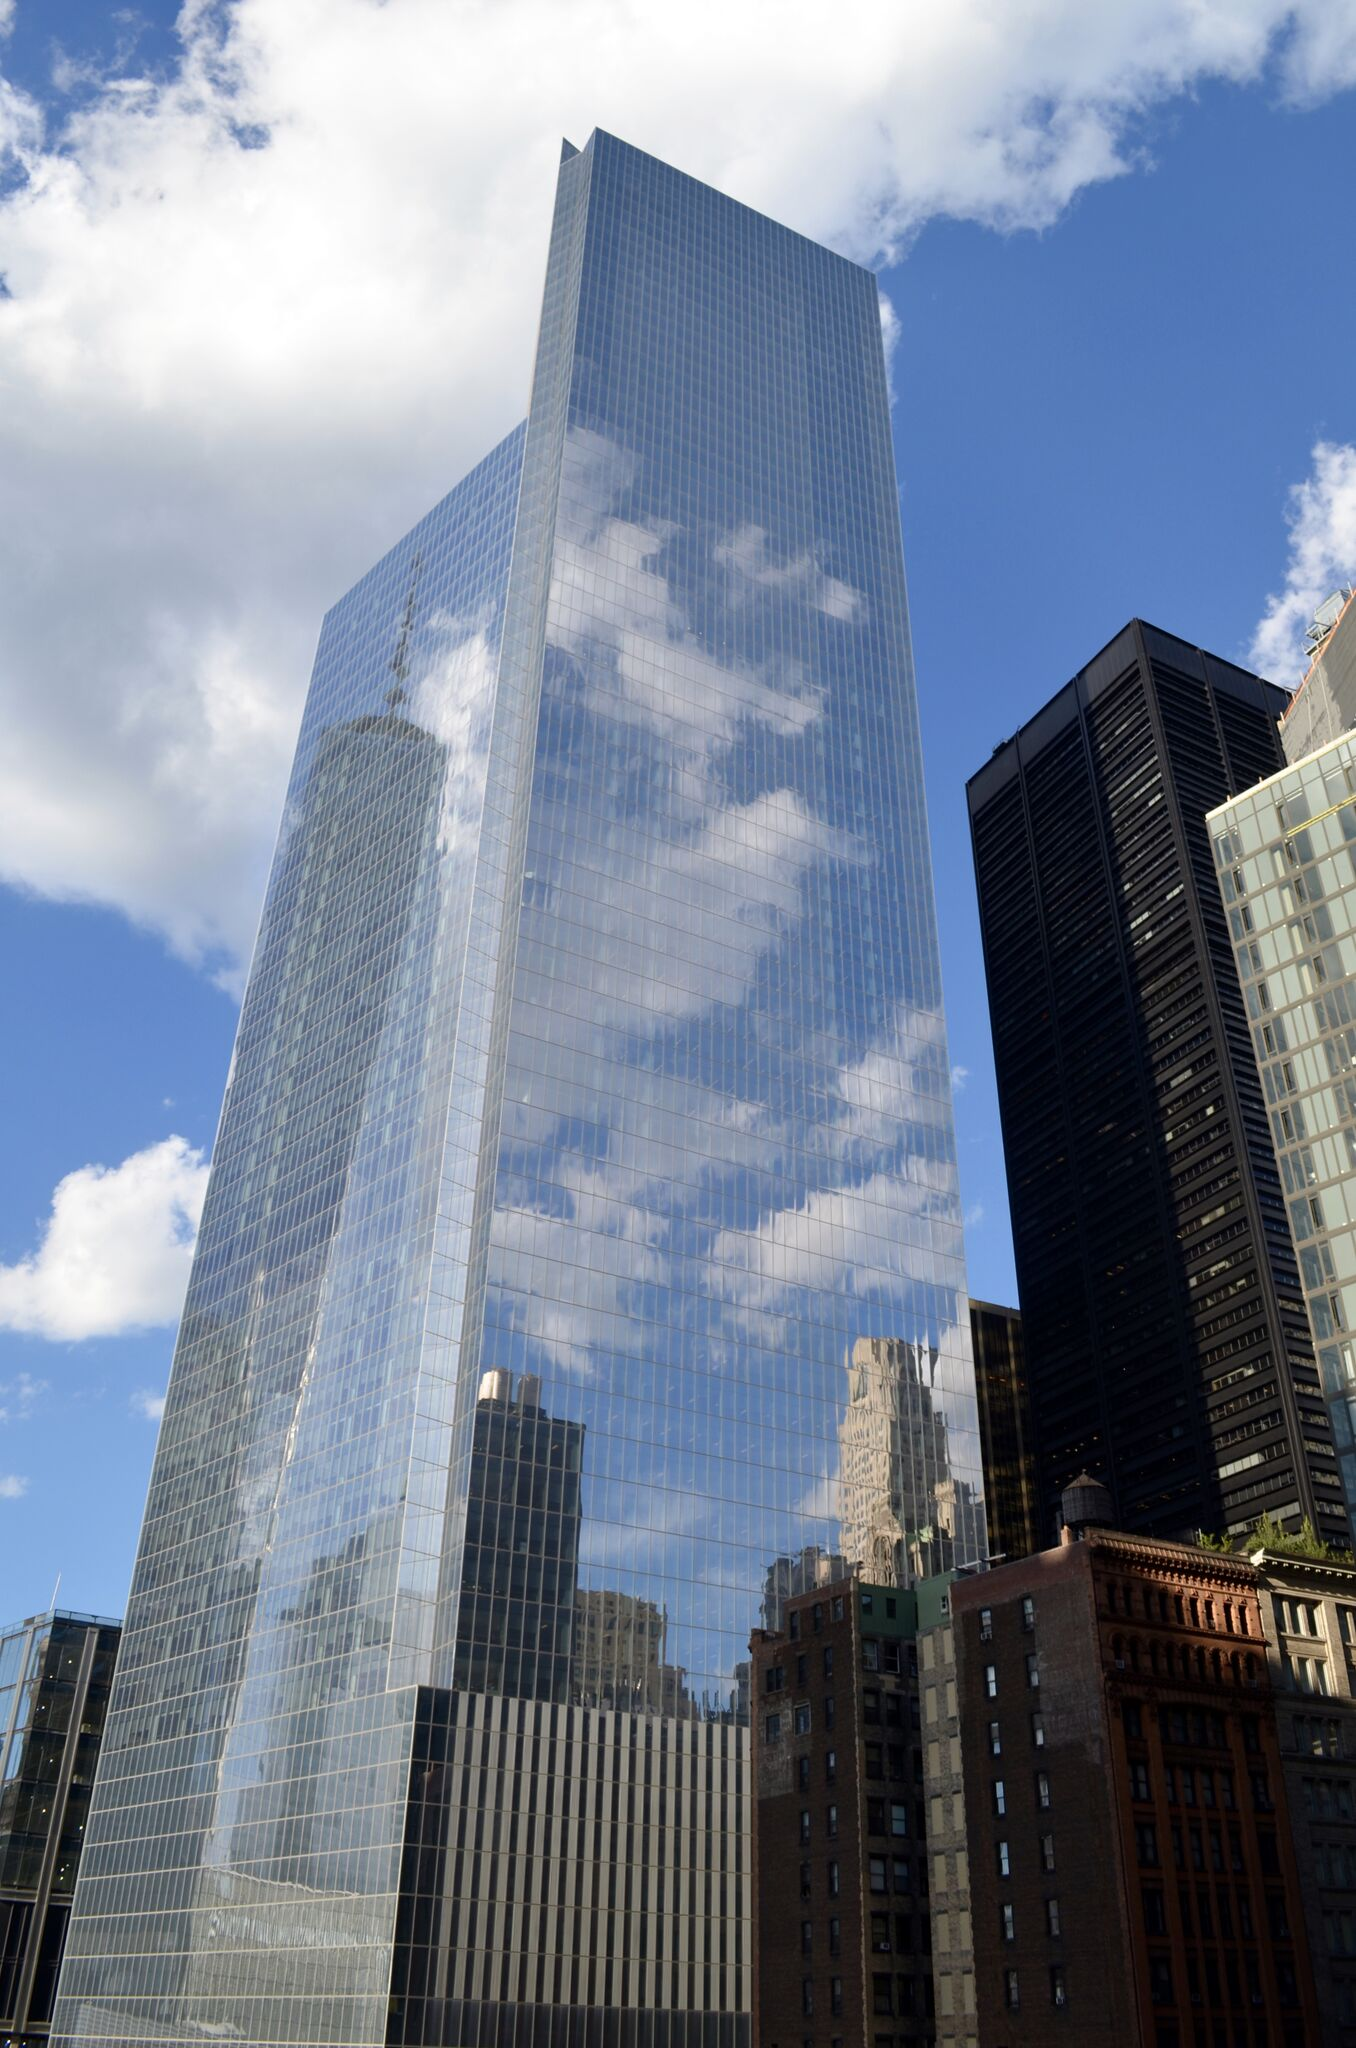 U.S. Division of Swiss Insurance Giant Headed for 4 WTC